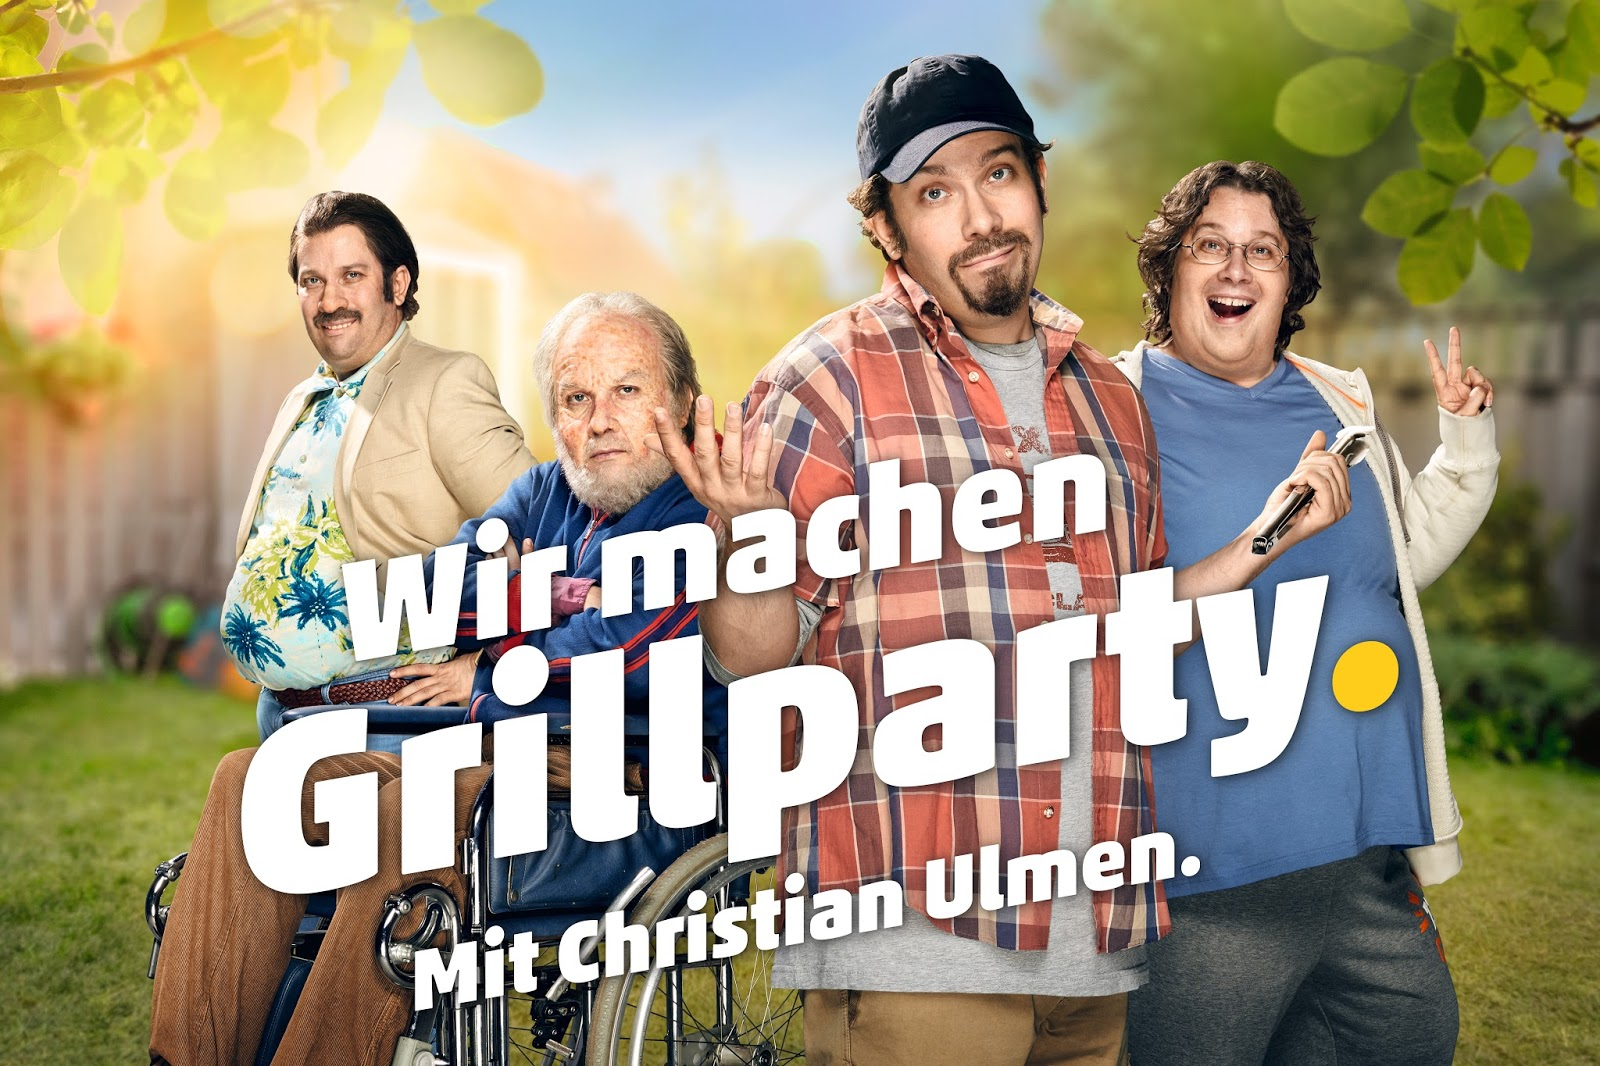 WIR MACHEN GRILLPARTY WEBISODE 5 - FINALE | PENNY X CHRISTIAN ULMEN IN 'ANDY PACKT AUS'